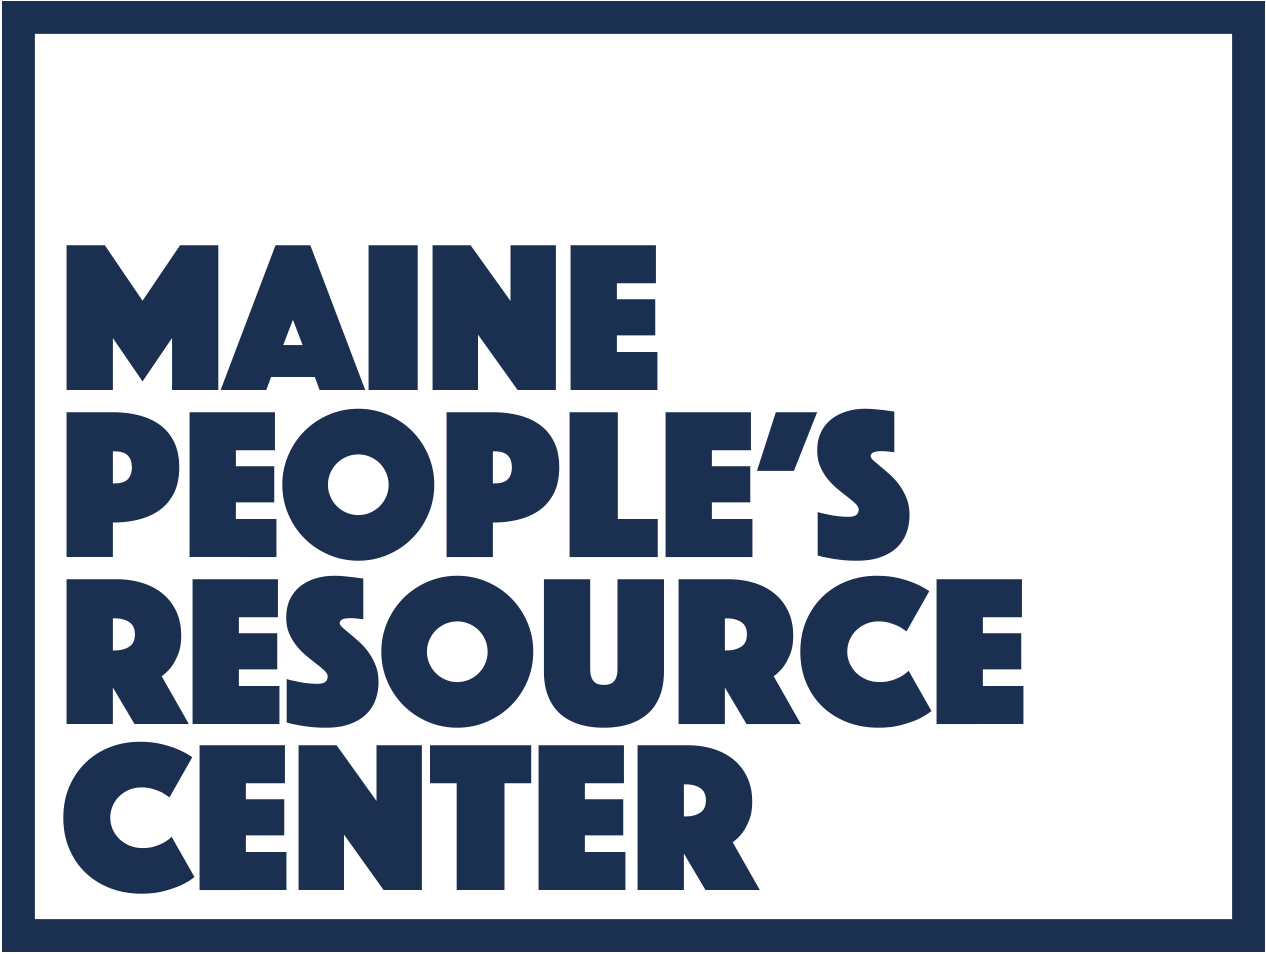 Maine People's Resource Center